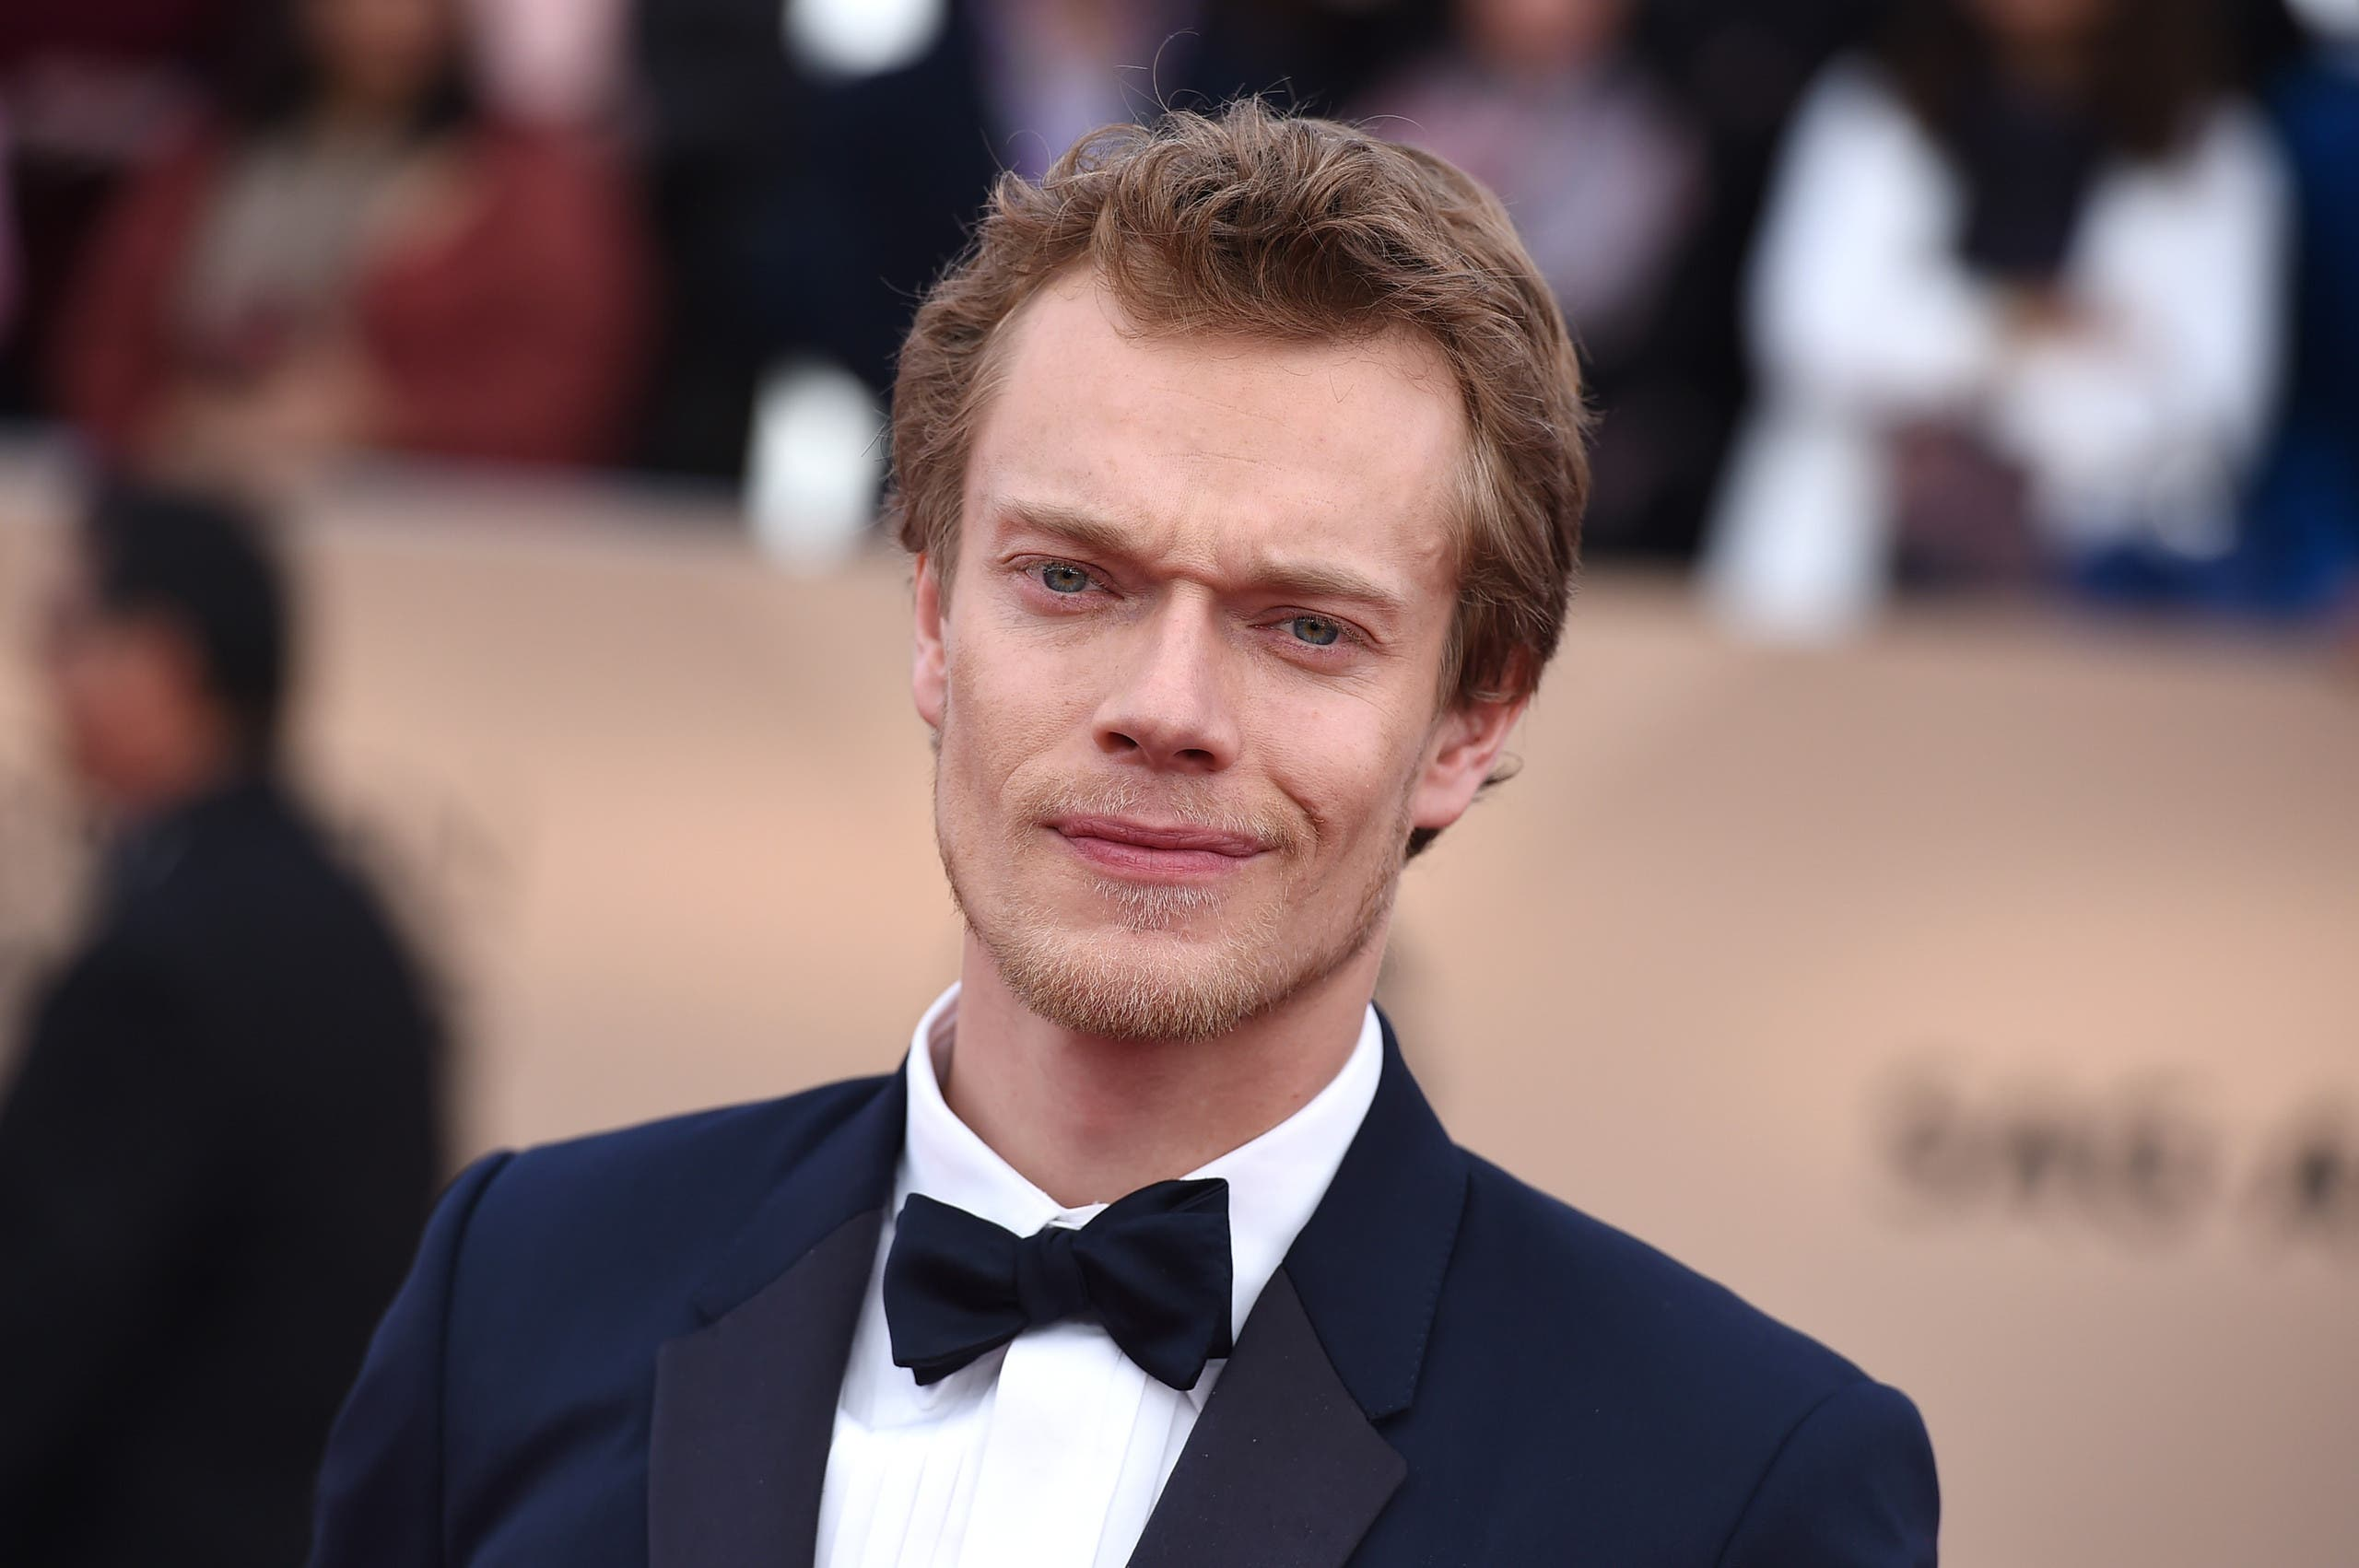 Alfie Allen who plays Theon Greyjoy on Game of Thrones. (File photo: AP)